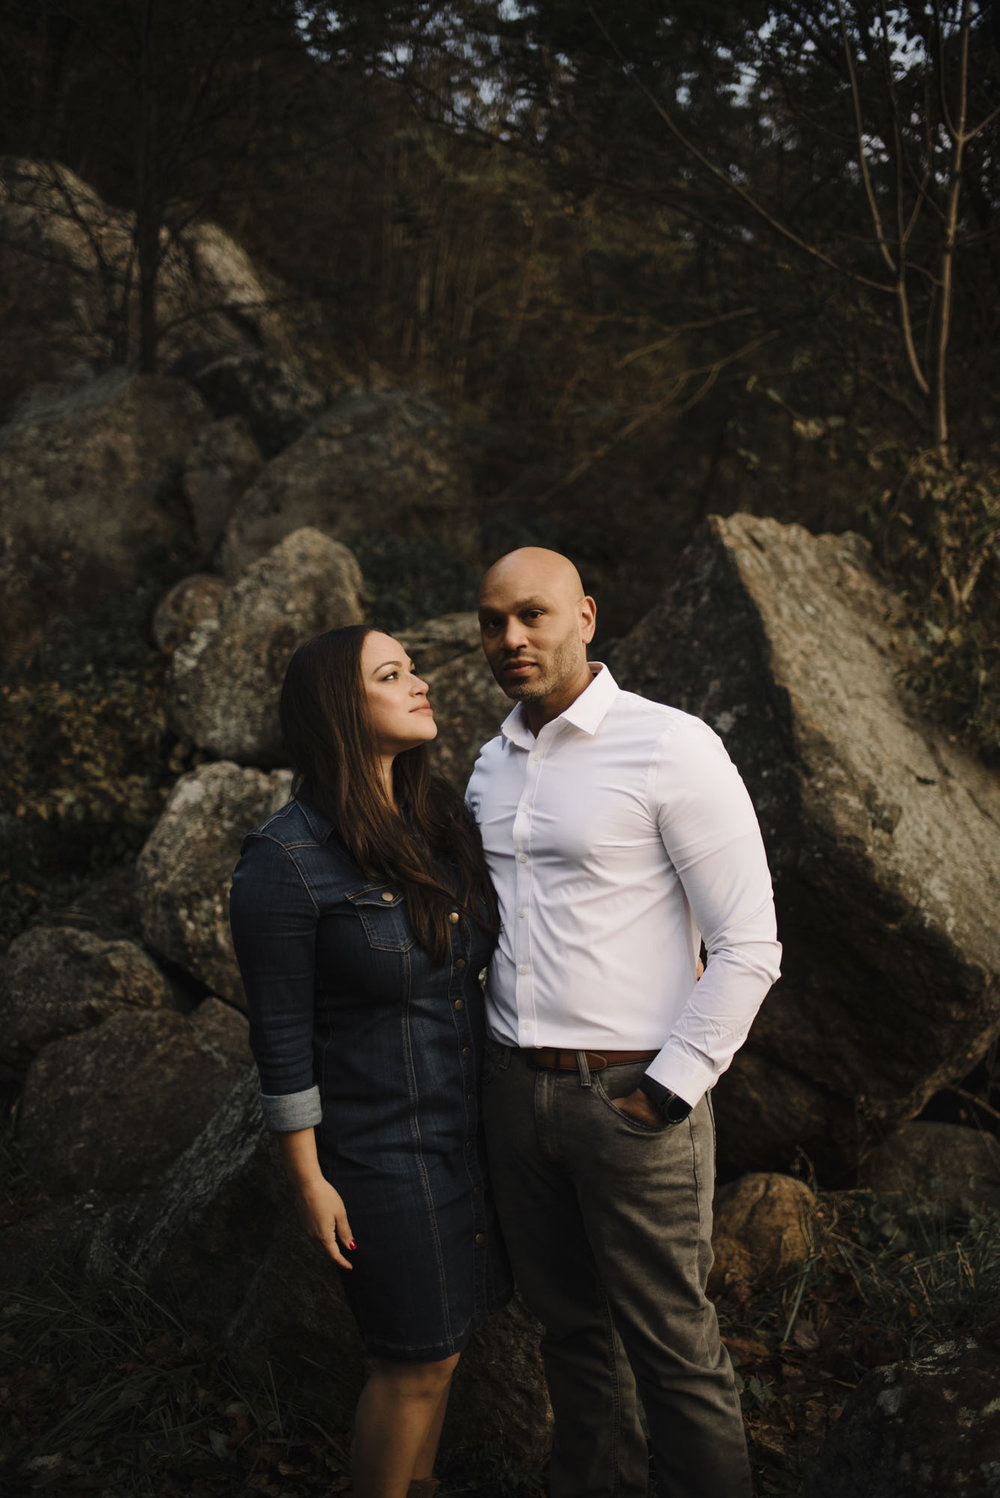 Shenandoah National Park Engagement Session - Shenandoah National Park Elopement Photographer - Virginia Adventure Photographer - Blue Ridge Parkway Elopement Photographer_15.jpg